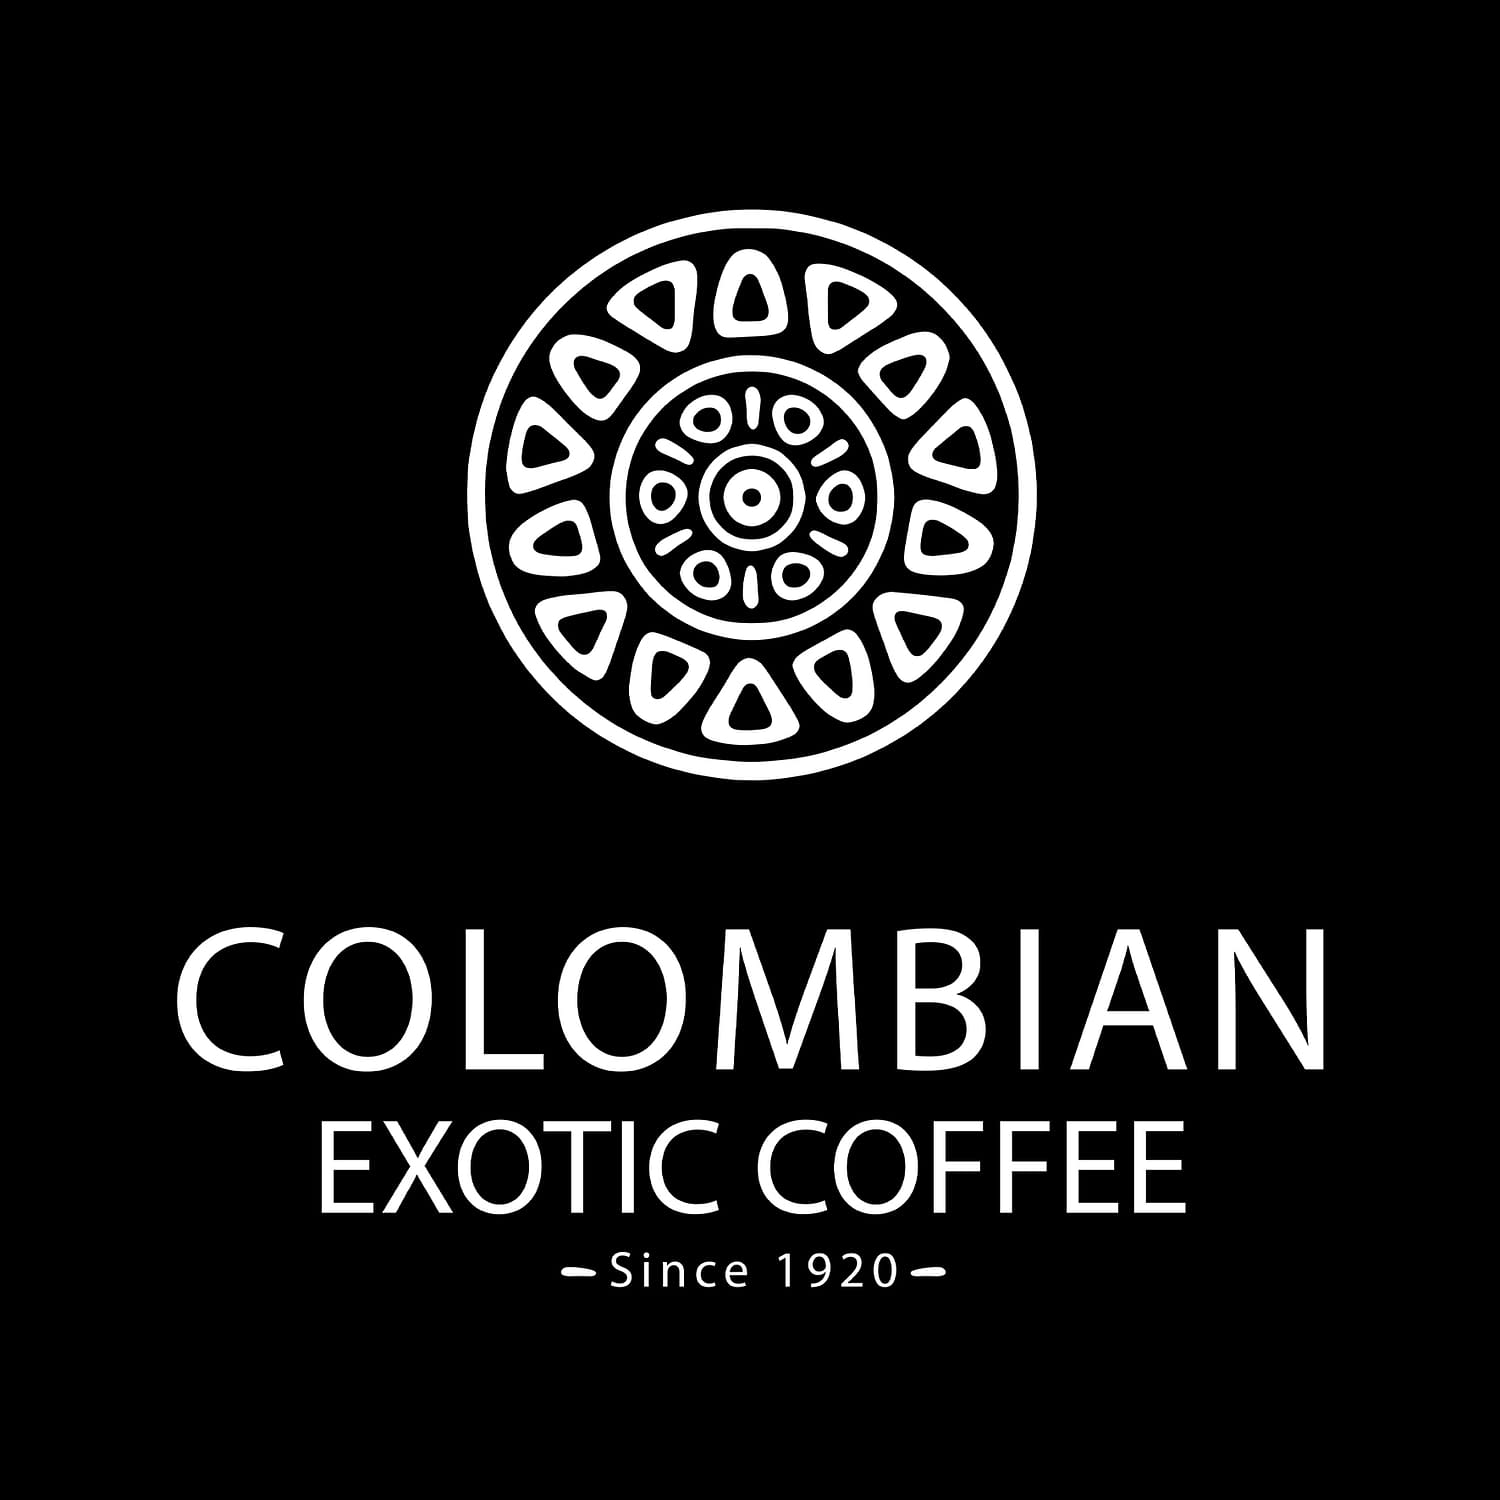 Colombian Exotic Coffee logo - white